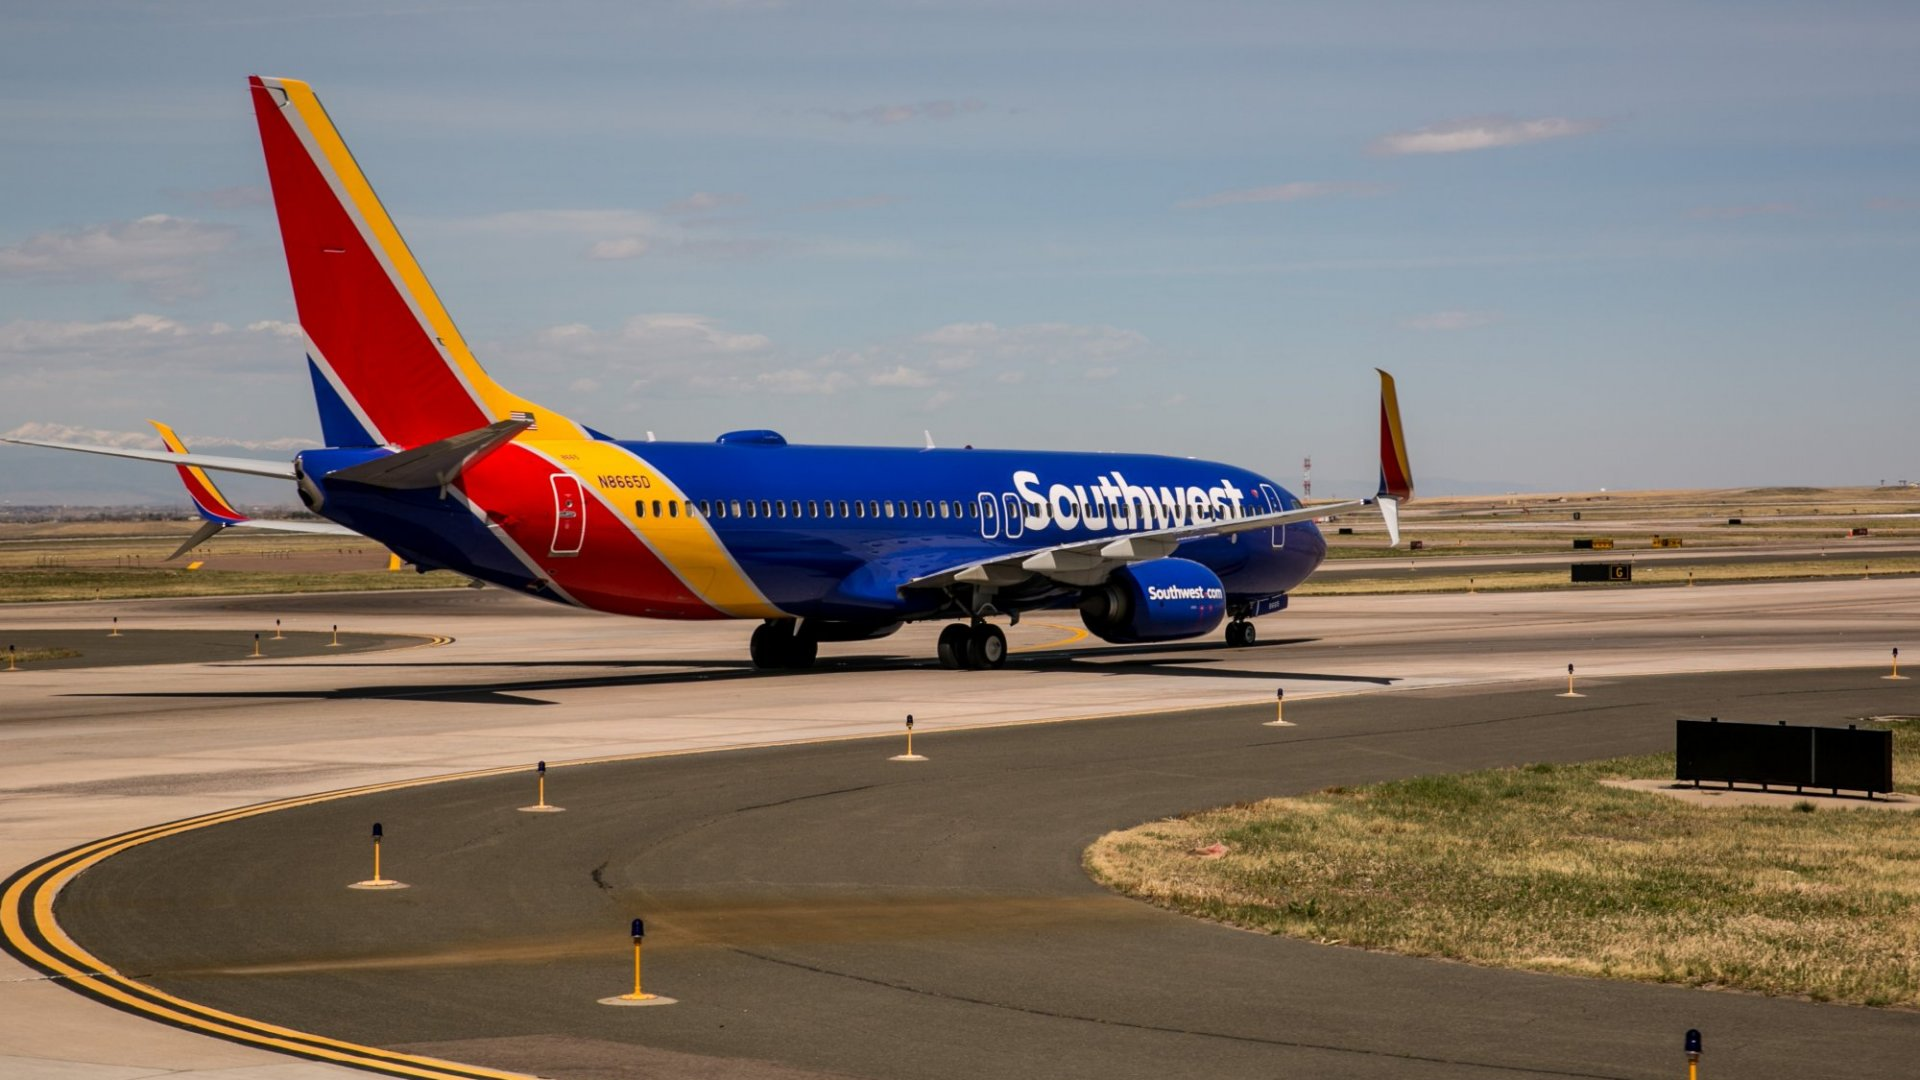 This Southwest Passenger Found a21-Hour Itinerary With 5 Stops From BOS to SFO. Here's Why He Took It Anyway